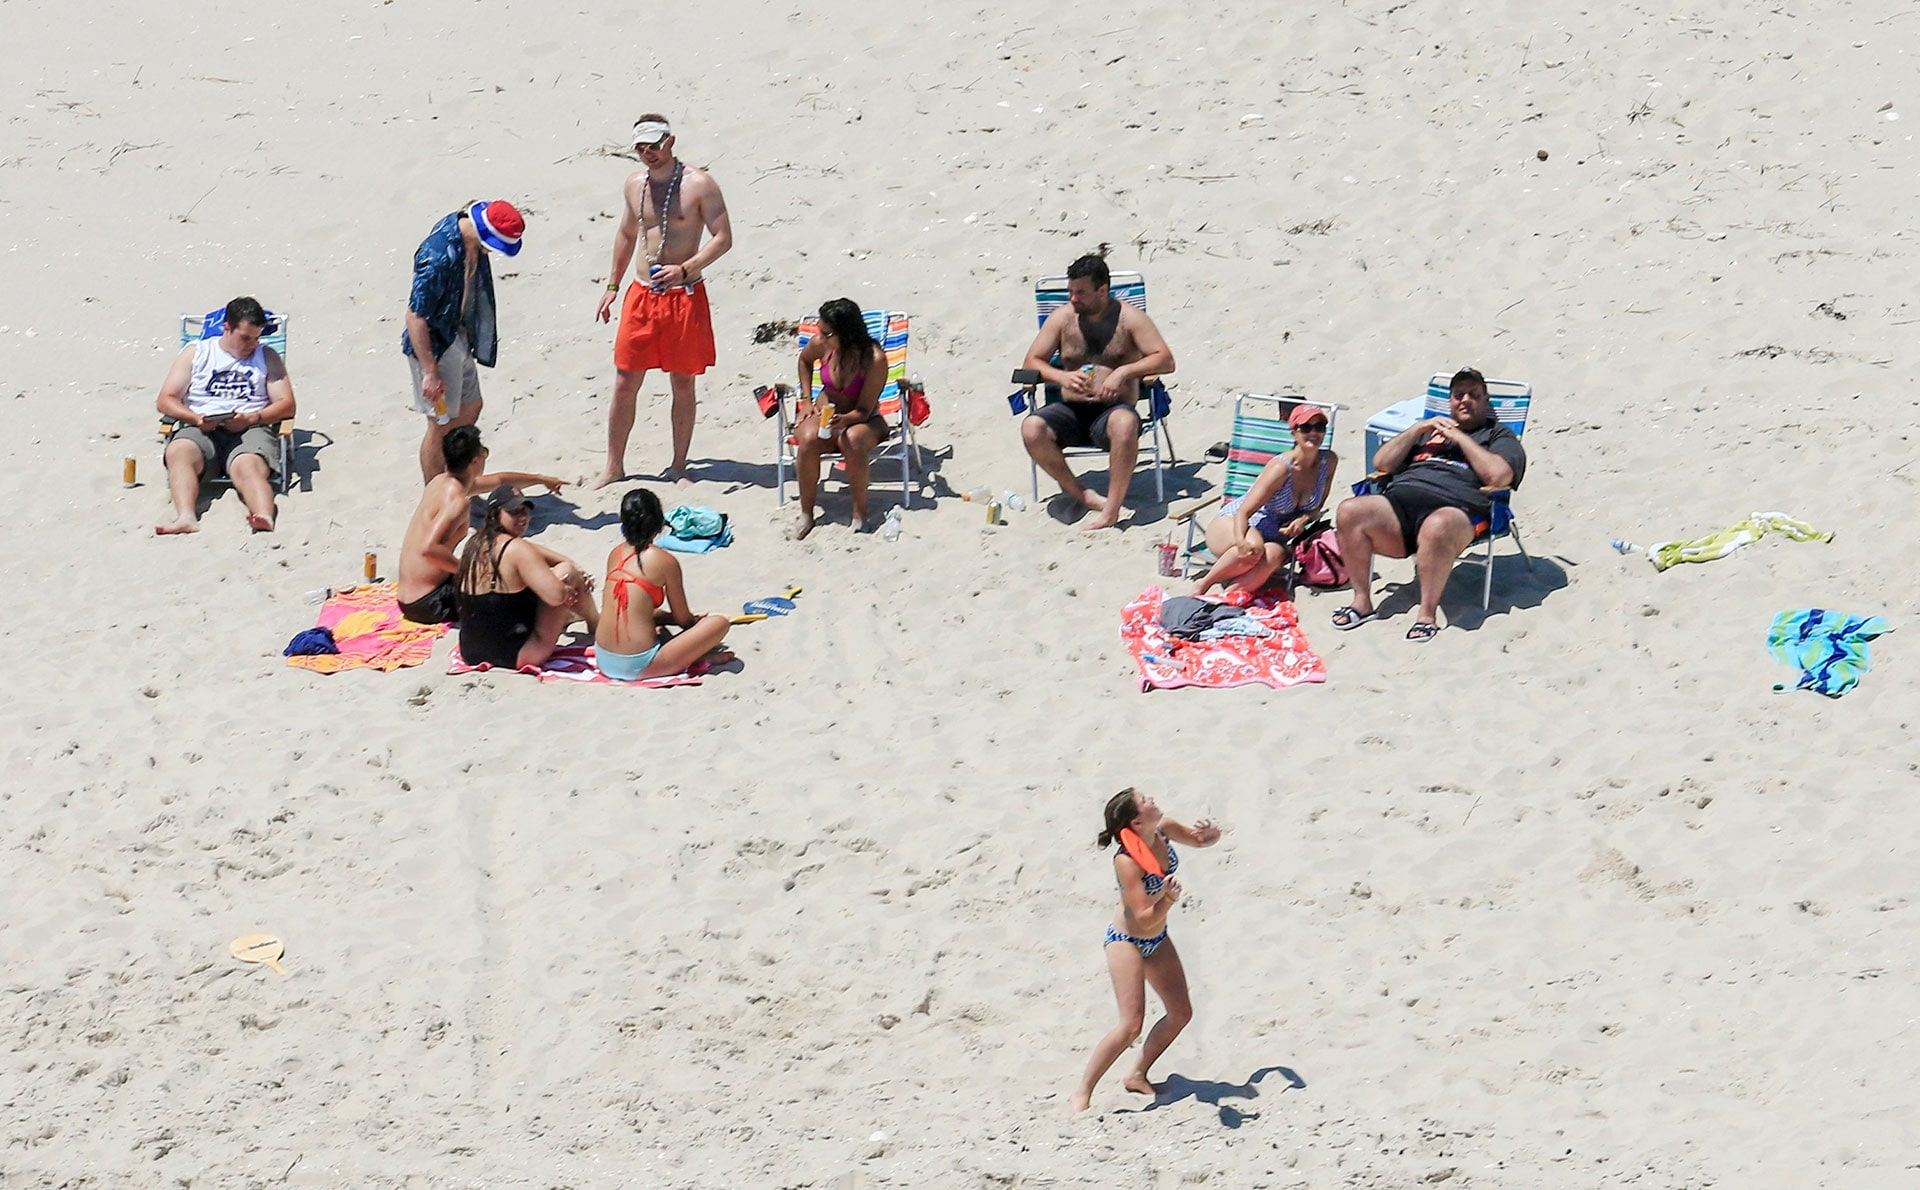 New Jersey Gov. Chris Christie, right, enjoys the beach with his family and friends